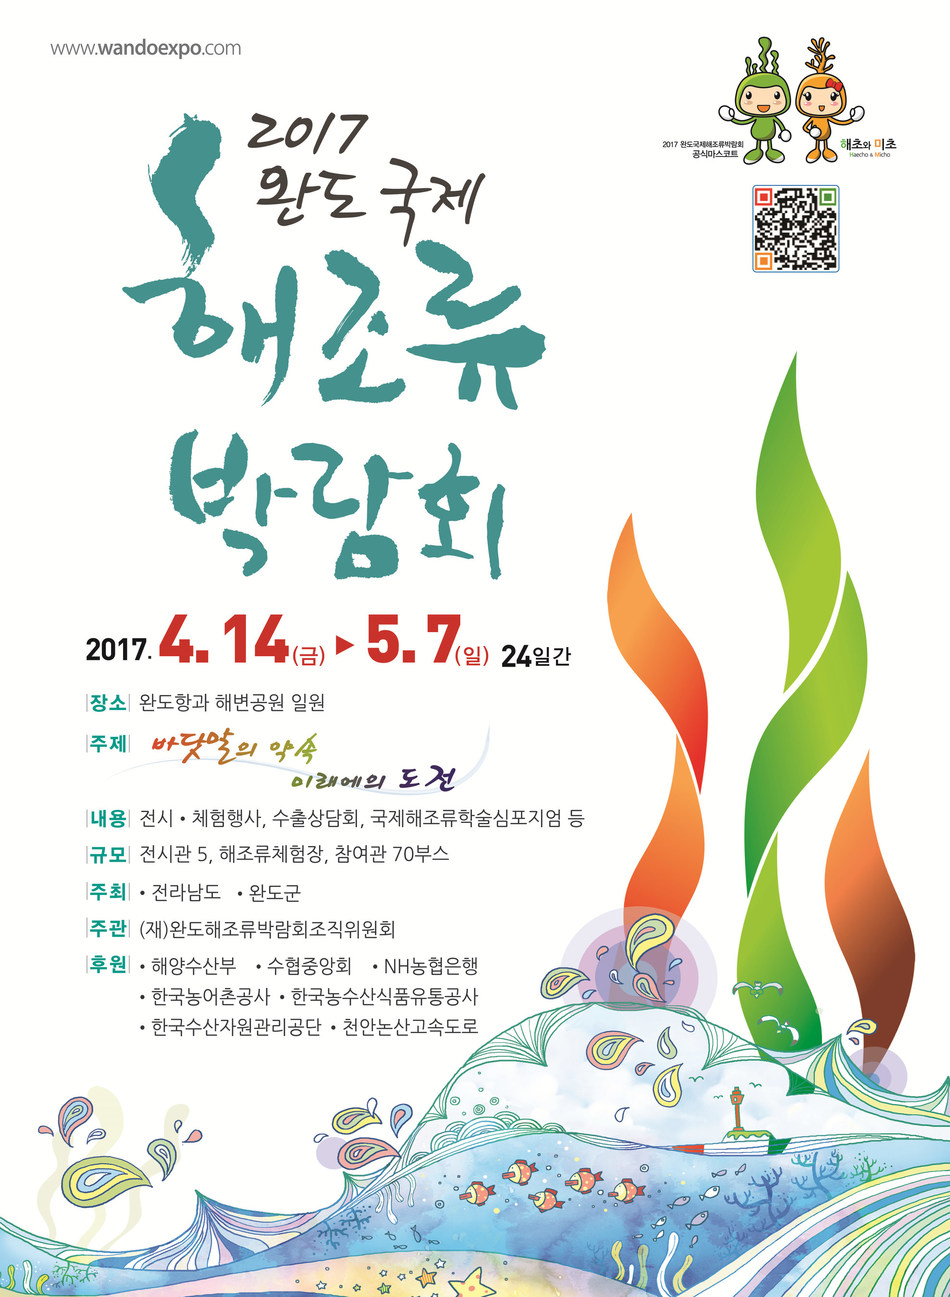 Wando Seaweeds Expo 2017 is underway at the exposition's main pavilion on Wando Island on the southwestern coast of South Korea on April 14, 2017. The exposition will continue through May 7.